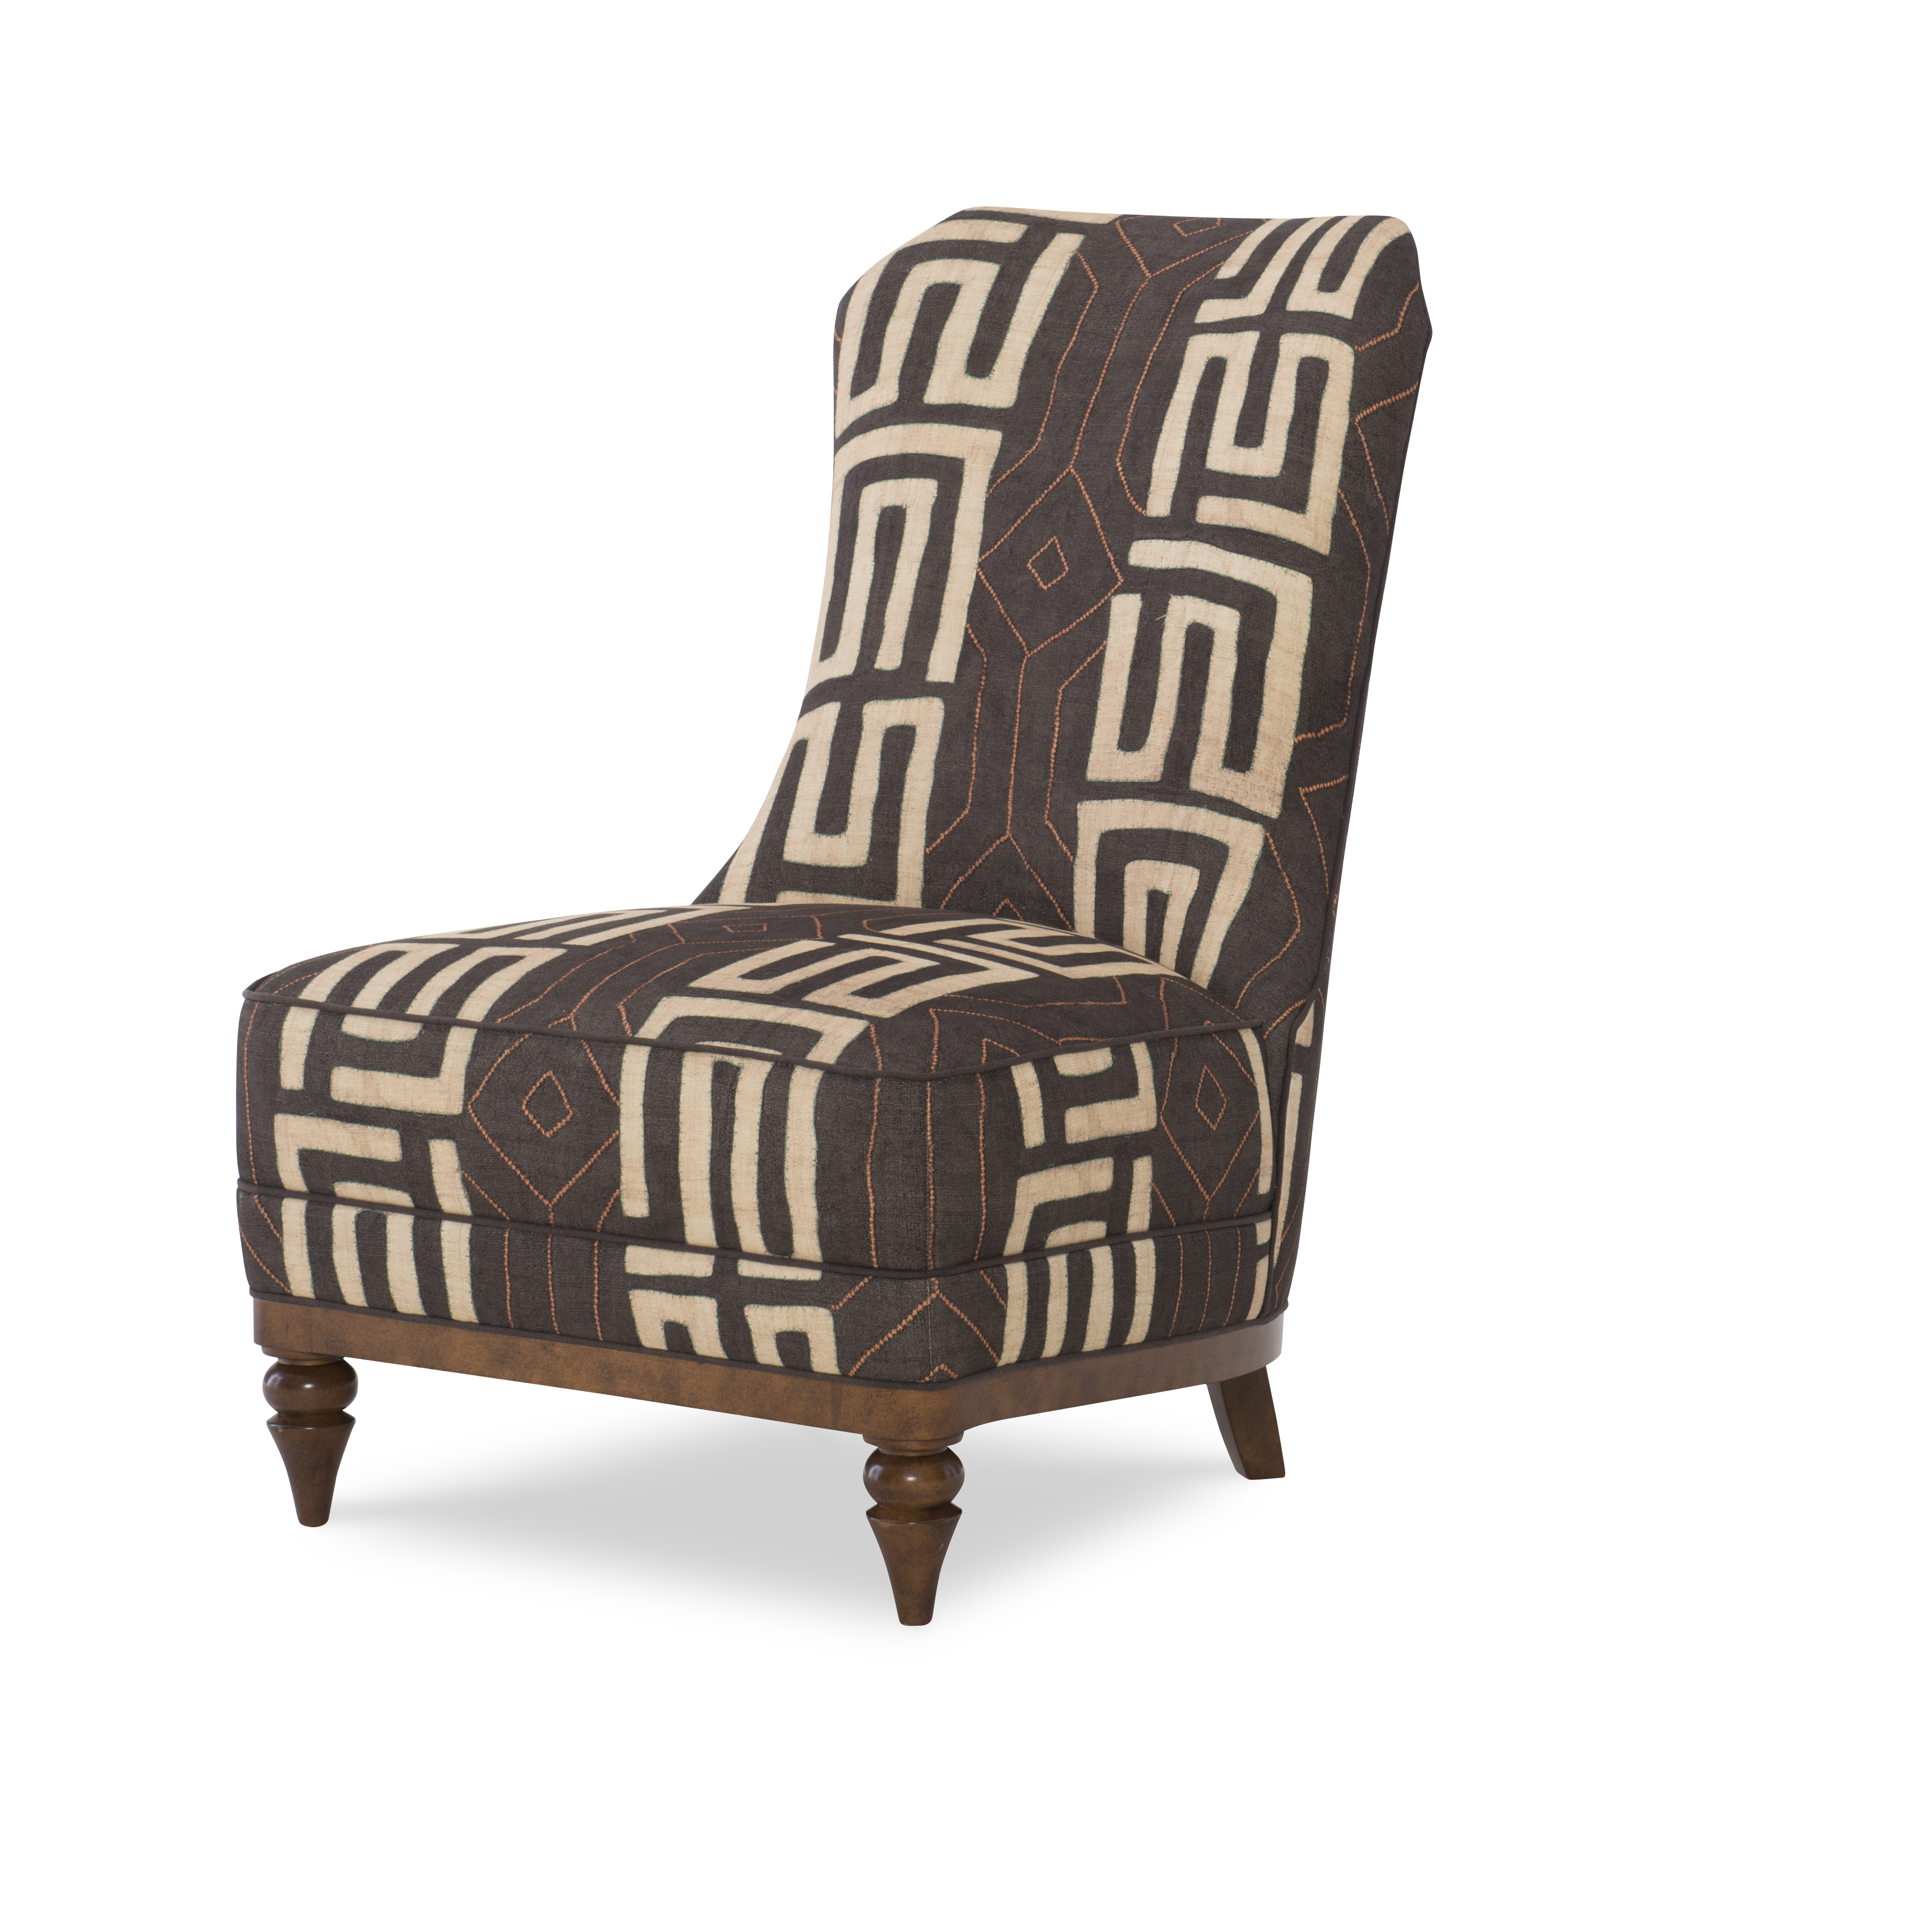 Urbane armless slipper chair with geometric patterns from Wesley Hall